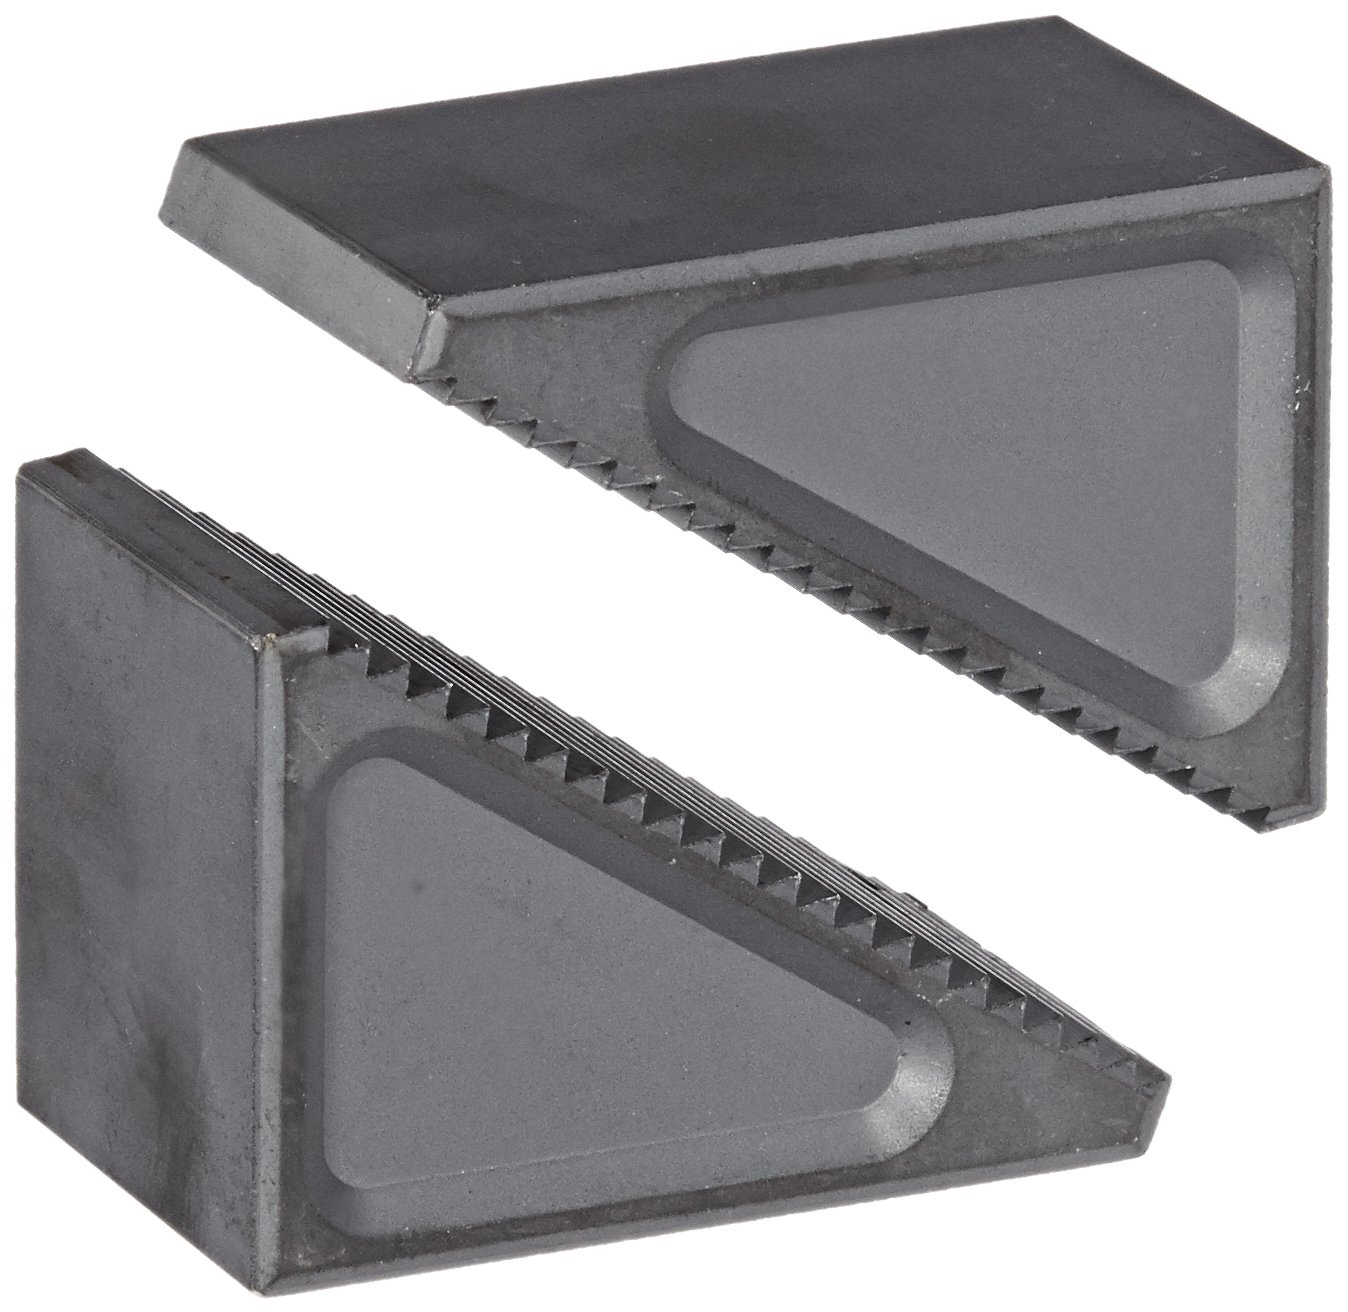 Te-Co 40105 2 Piece Steel Step Block Set, 1-1/2'' Thick, 1-43/64'' Width x 2-17/32'' Height, 1-3/4'' to 4'' Height Range